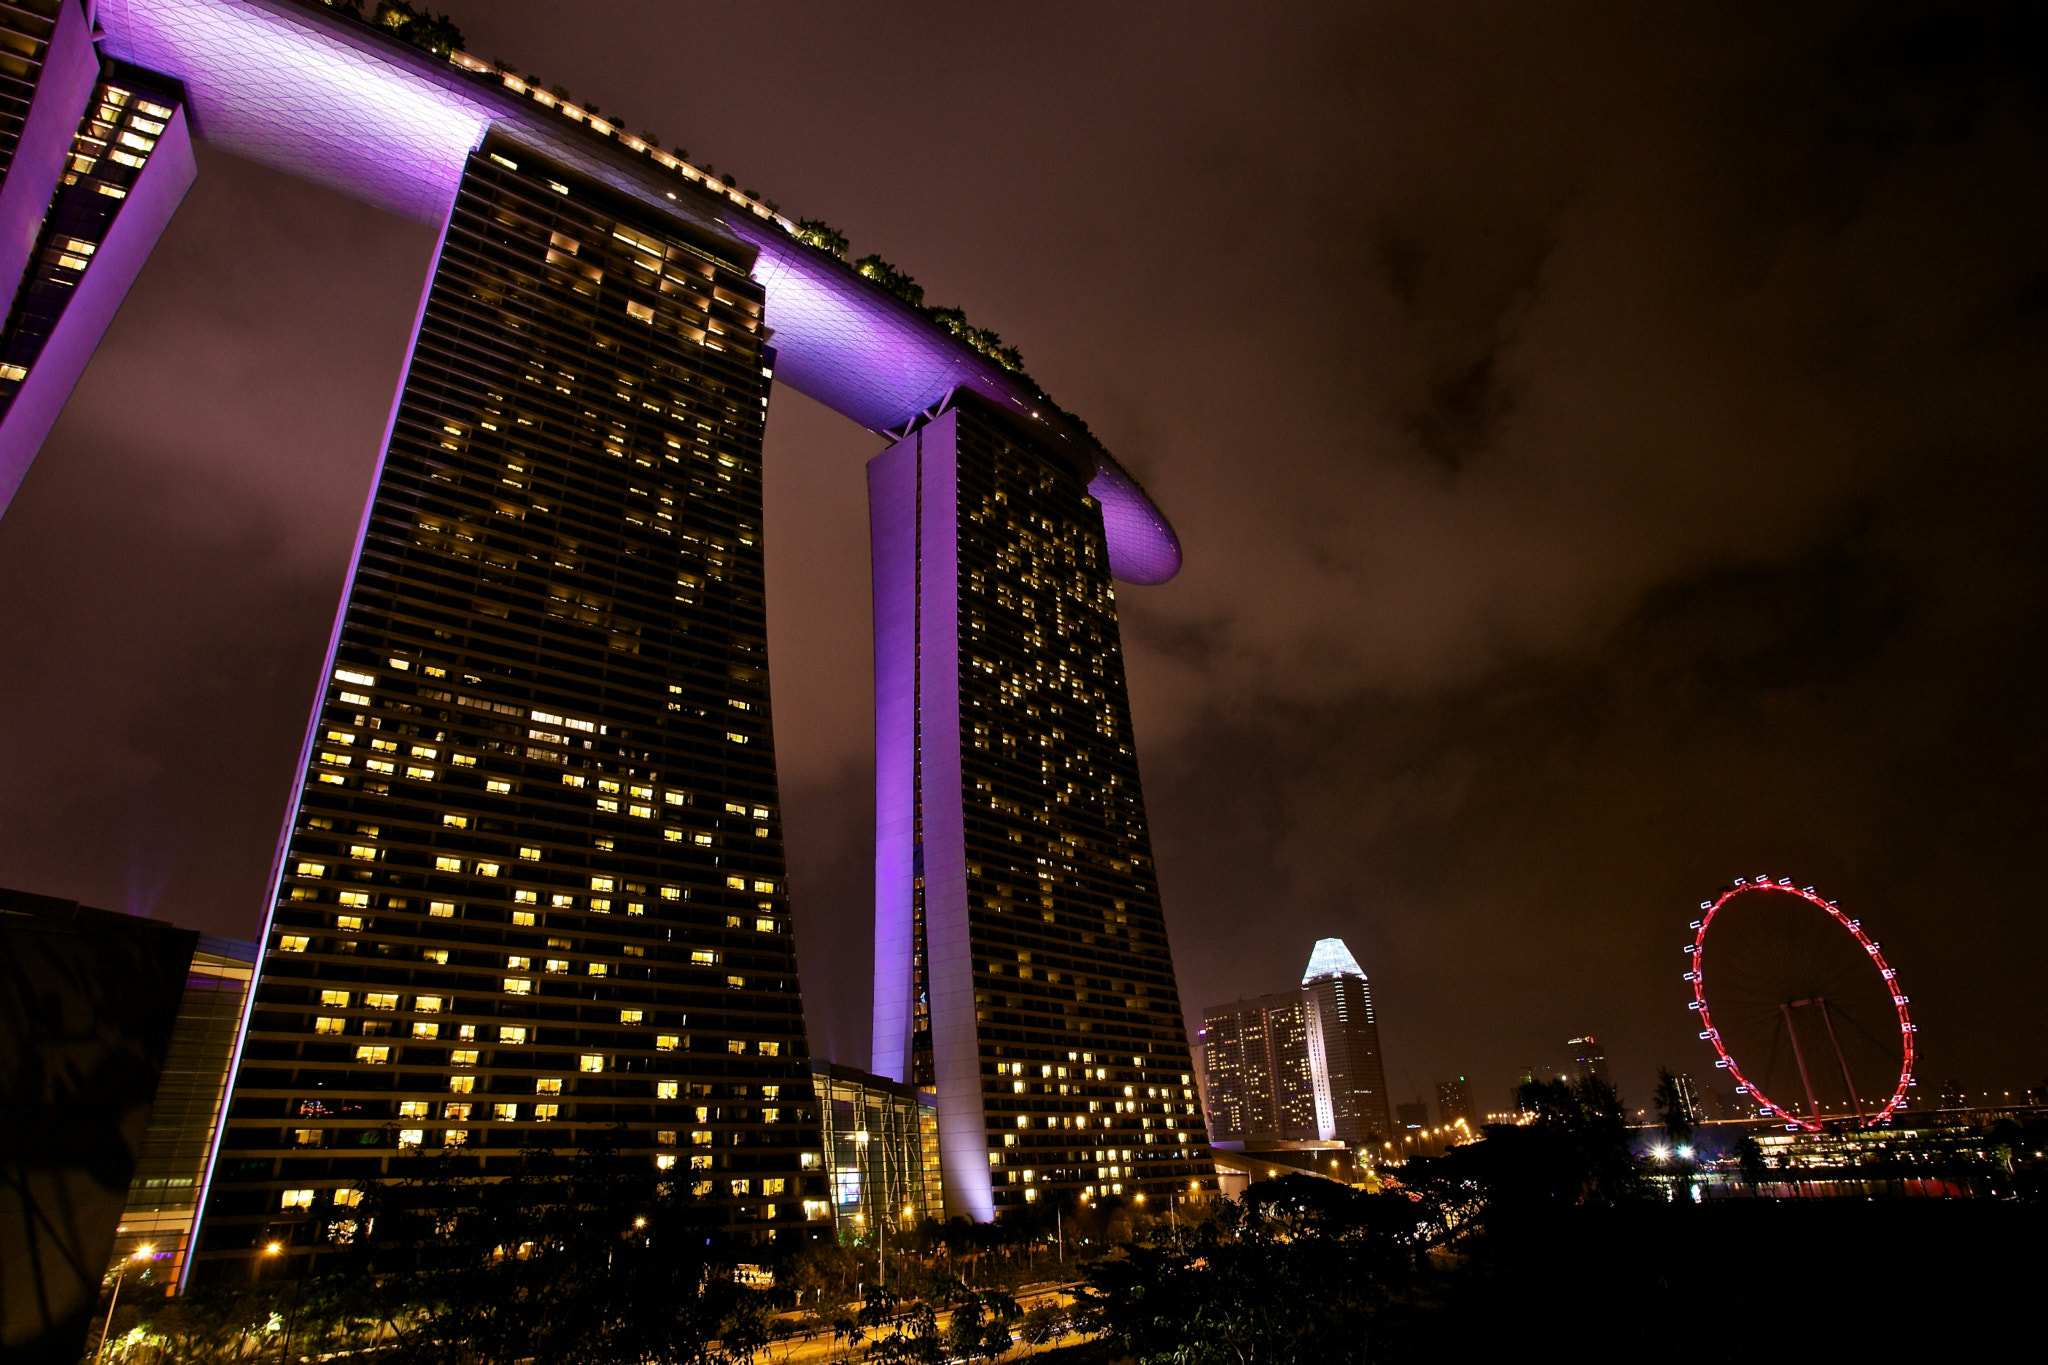 Photograph Marina Bay Sands & Singapore Flyer by Sean Cheng on 500px